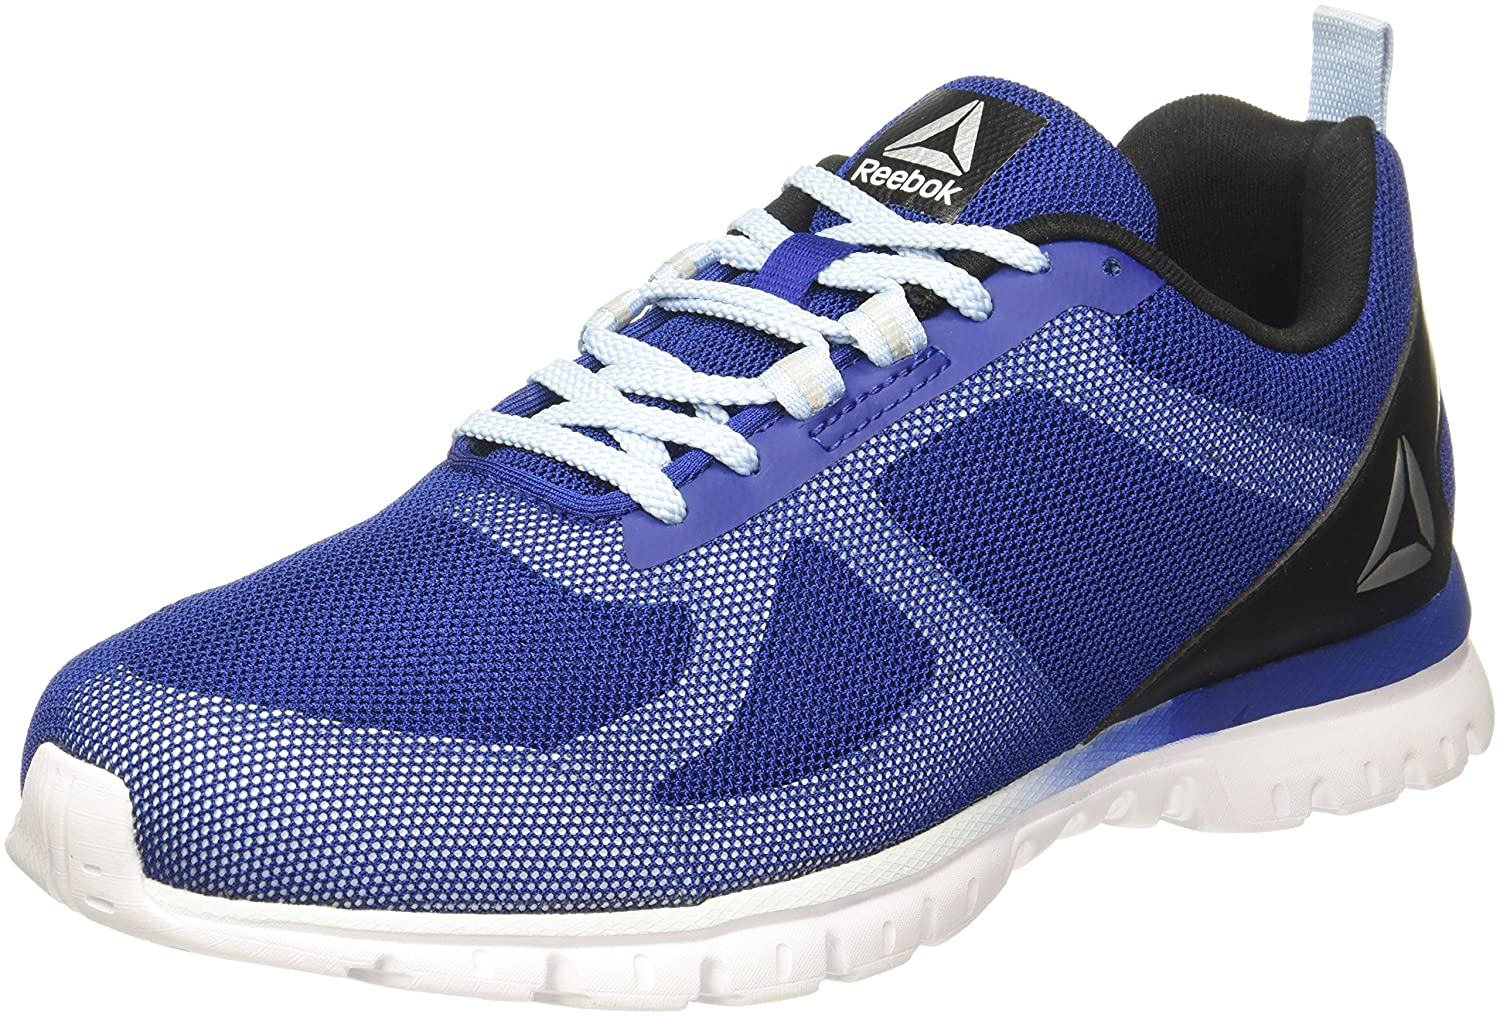 558dcdc06253 Reebok Women s Super Lite Running Shoes  Amazon.in  Shoes   Handbags